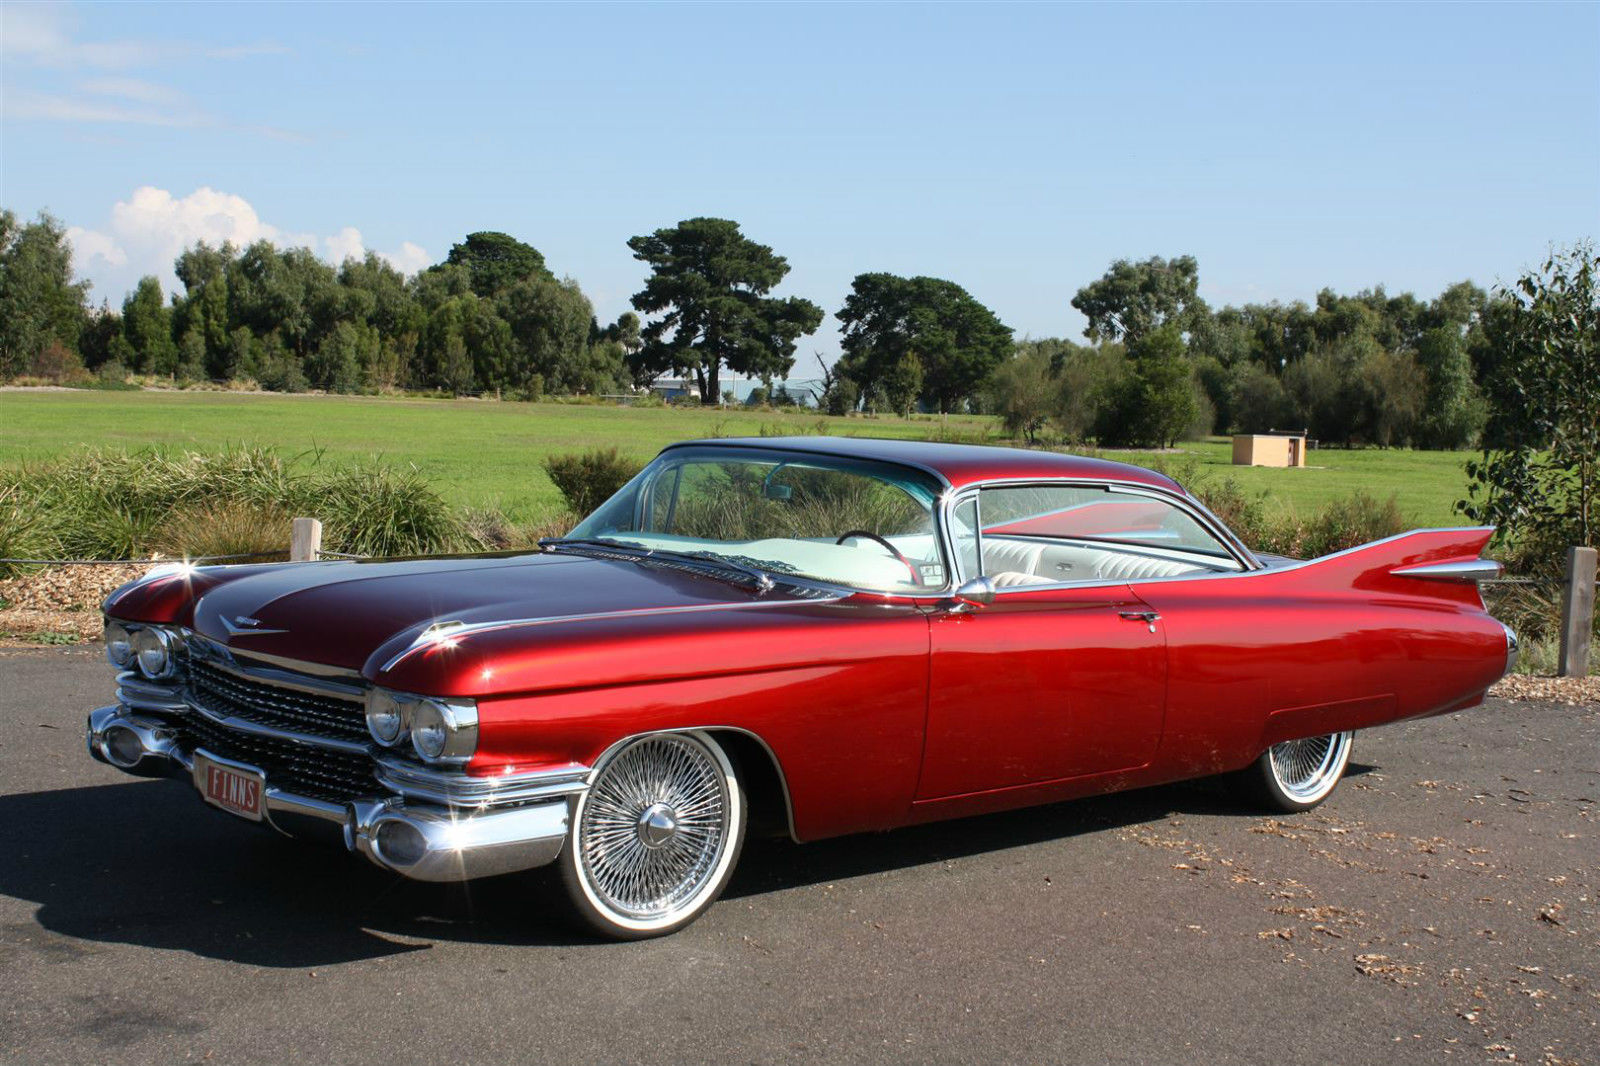 1959 Cadillac Series 62 Coupe Deville Candy Red Custom Built Show Toyota Pickup Fuel Filter Location Car 390cbi V8 For Sale In Carrum Downs Vic Australia